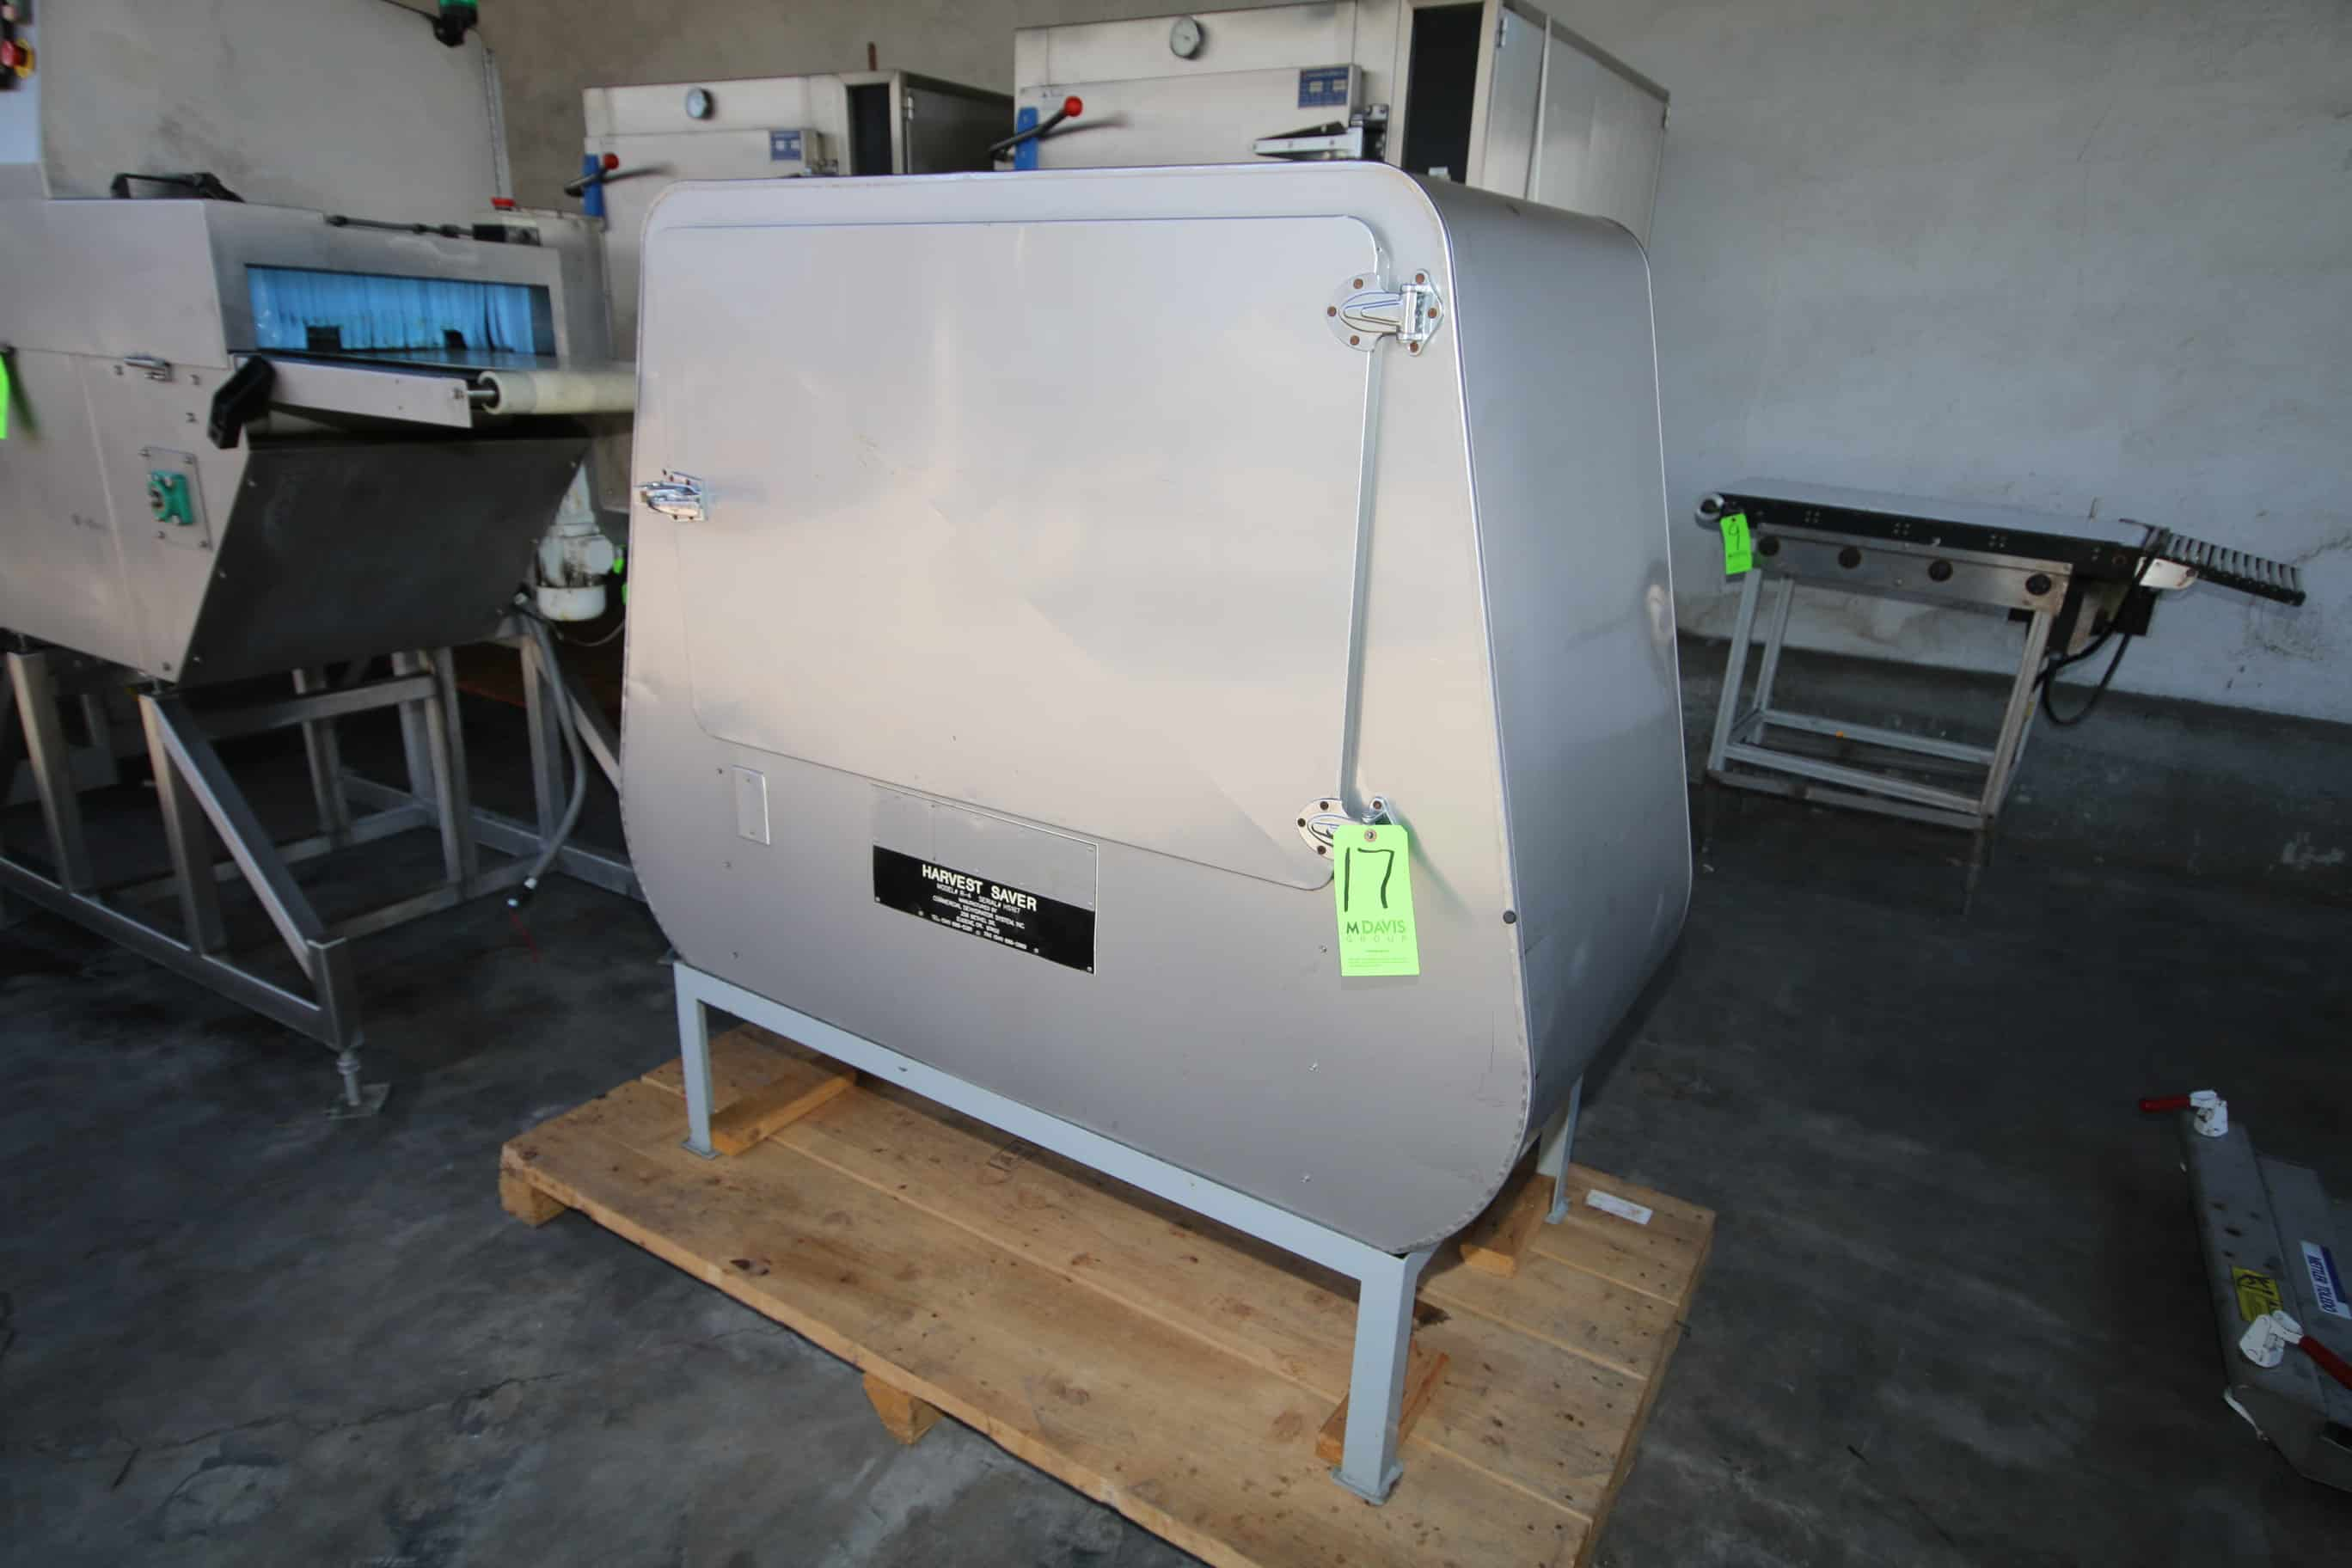 Harvest Saver Commercial Dehydrator System, M/N R-4, S/N HS 167, S/S Enclosure with Hinge Door, 15-Slot S/S Screen System